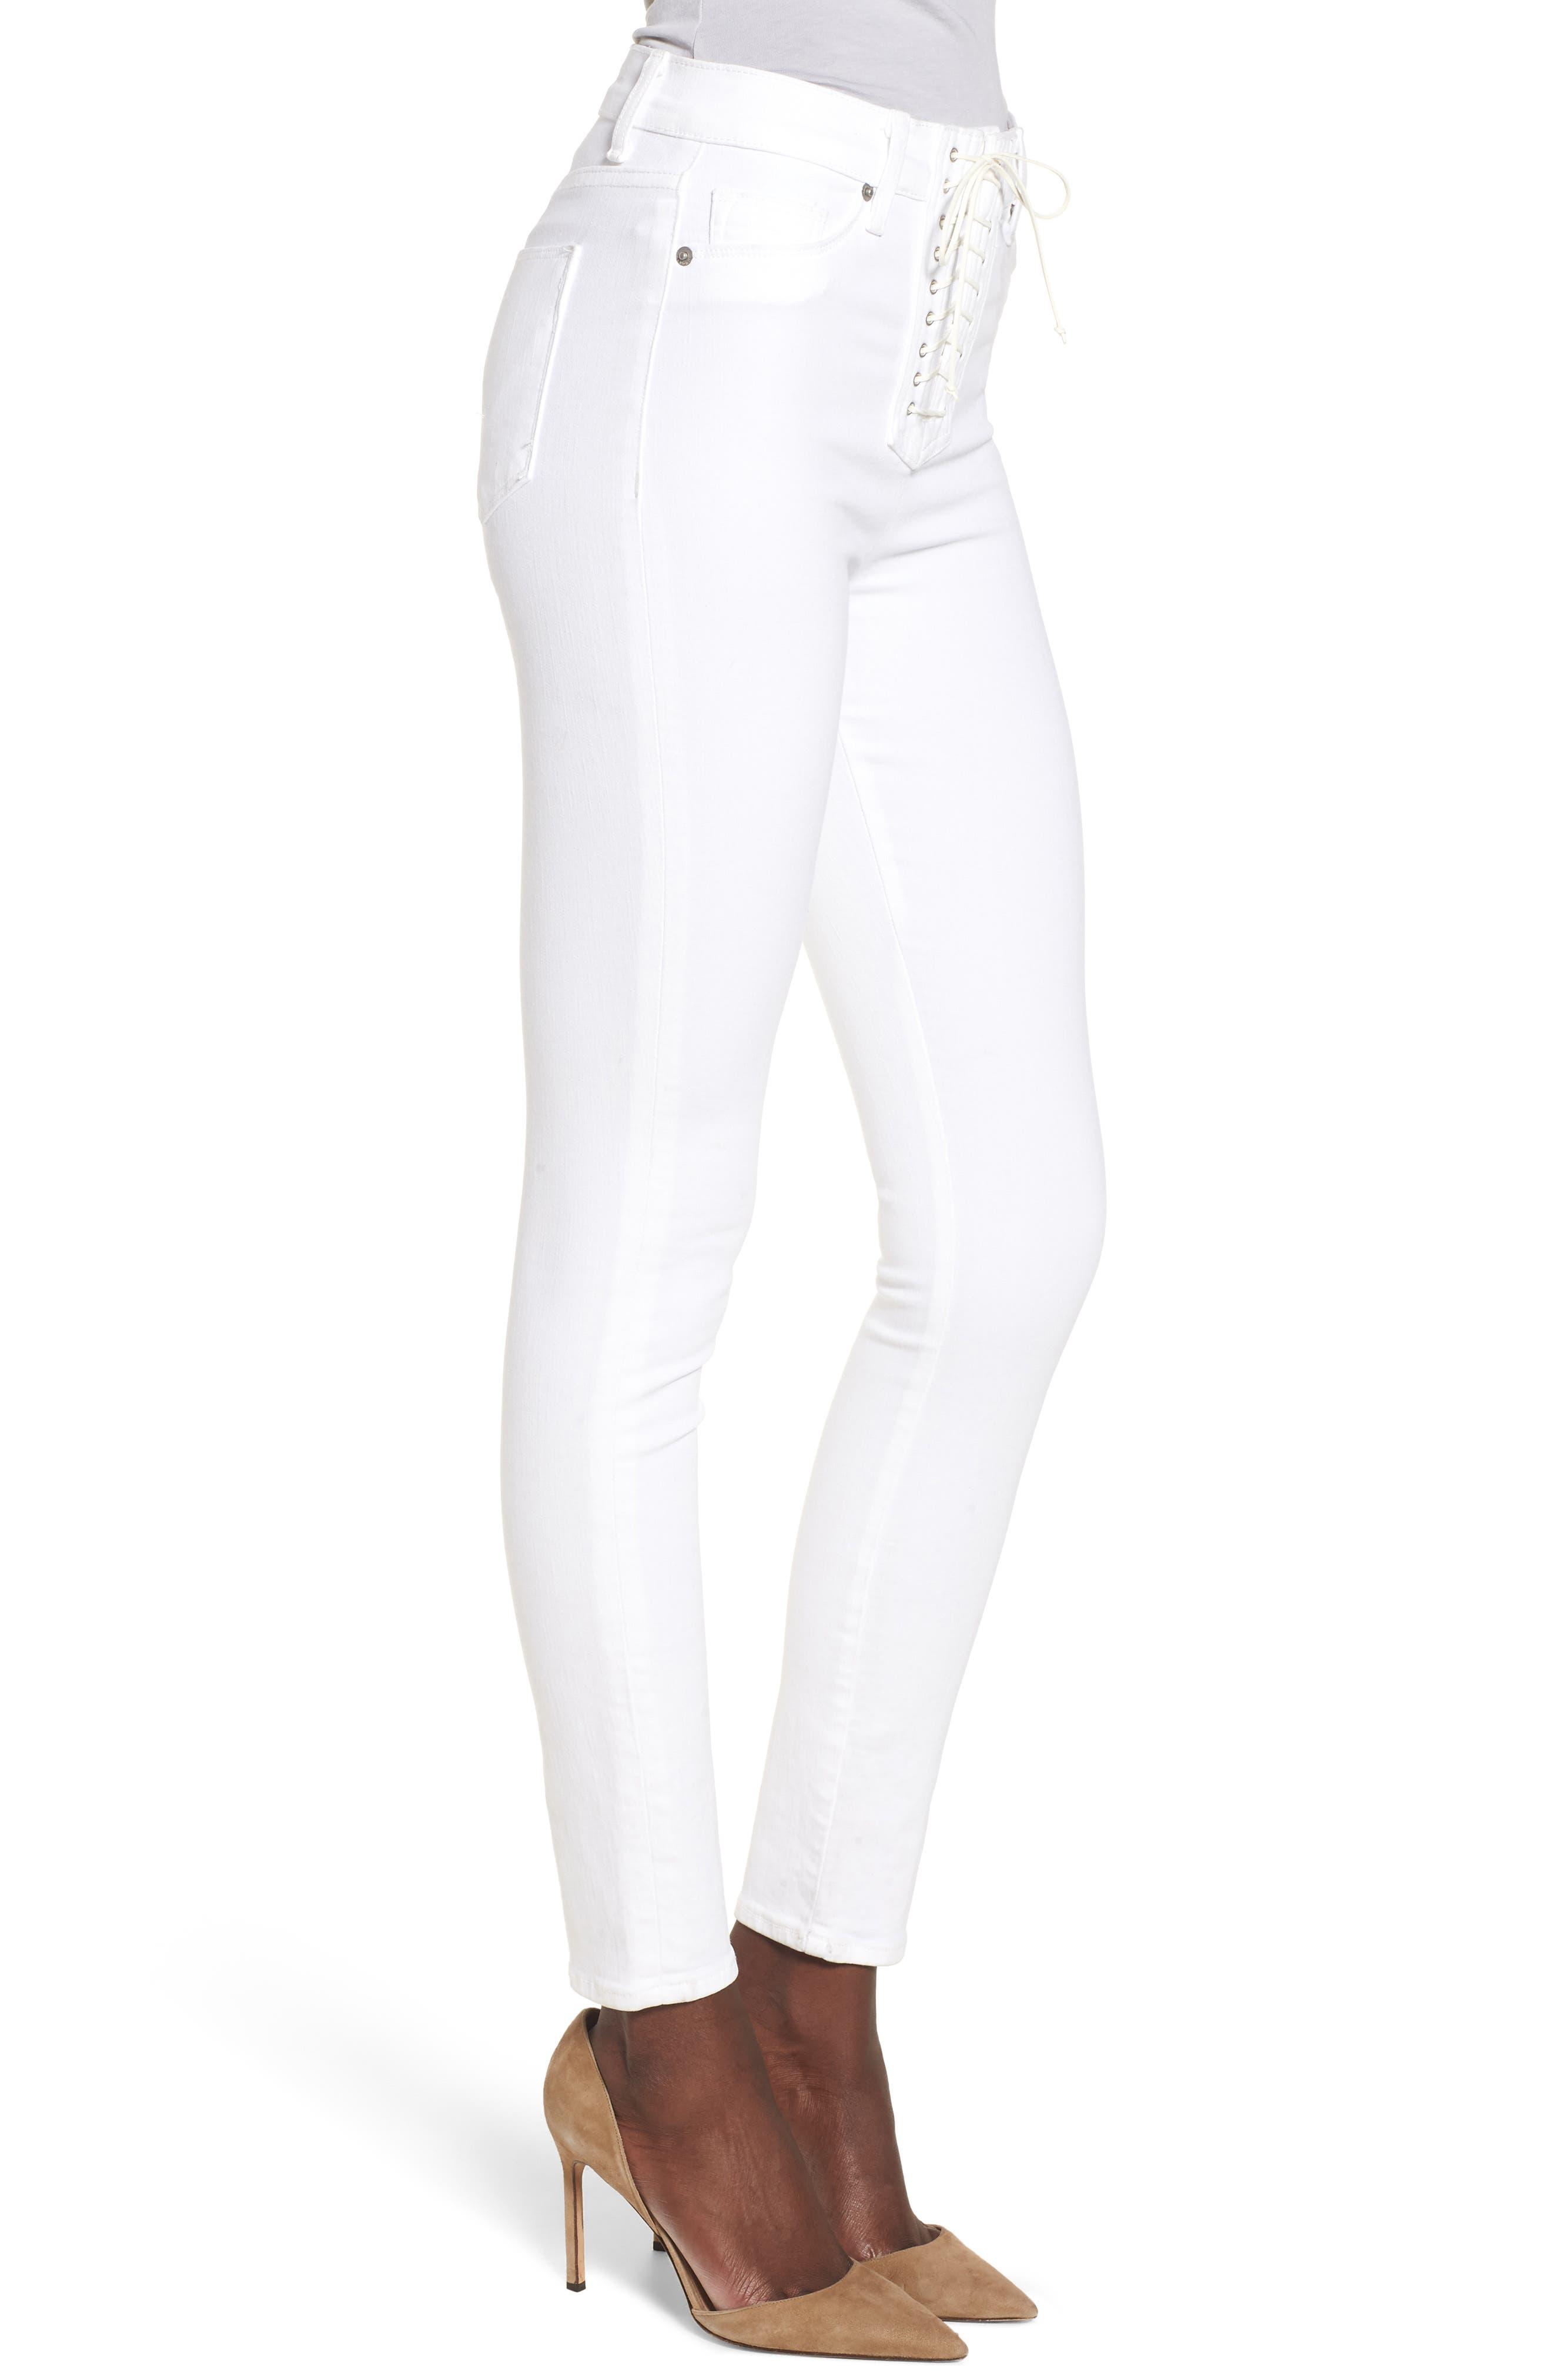 Bullocks Lace-Up High Waist Super Skinny Jeans,                             Alternate thumbnail 3, color,                             Optical White